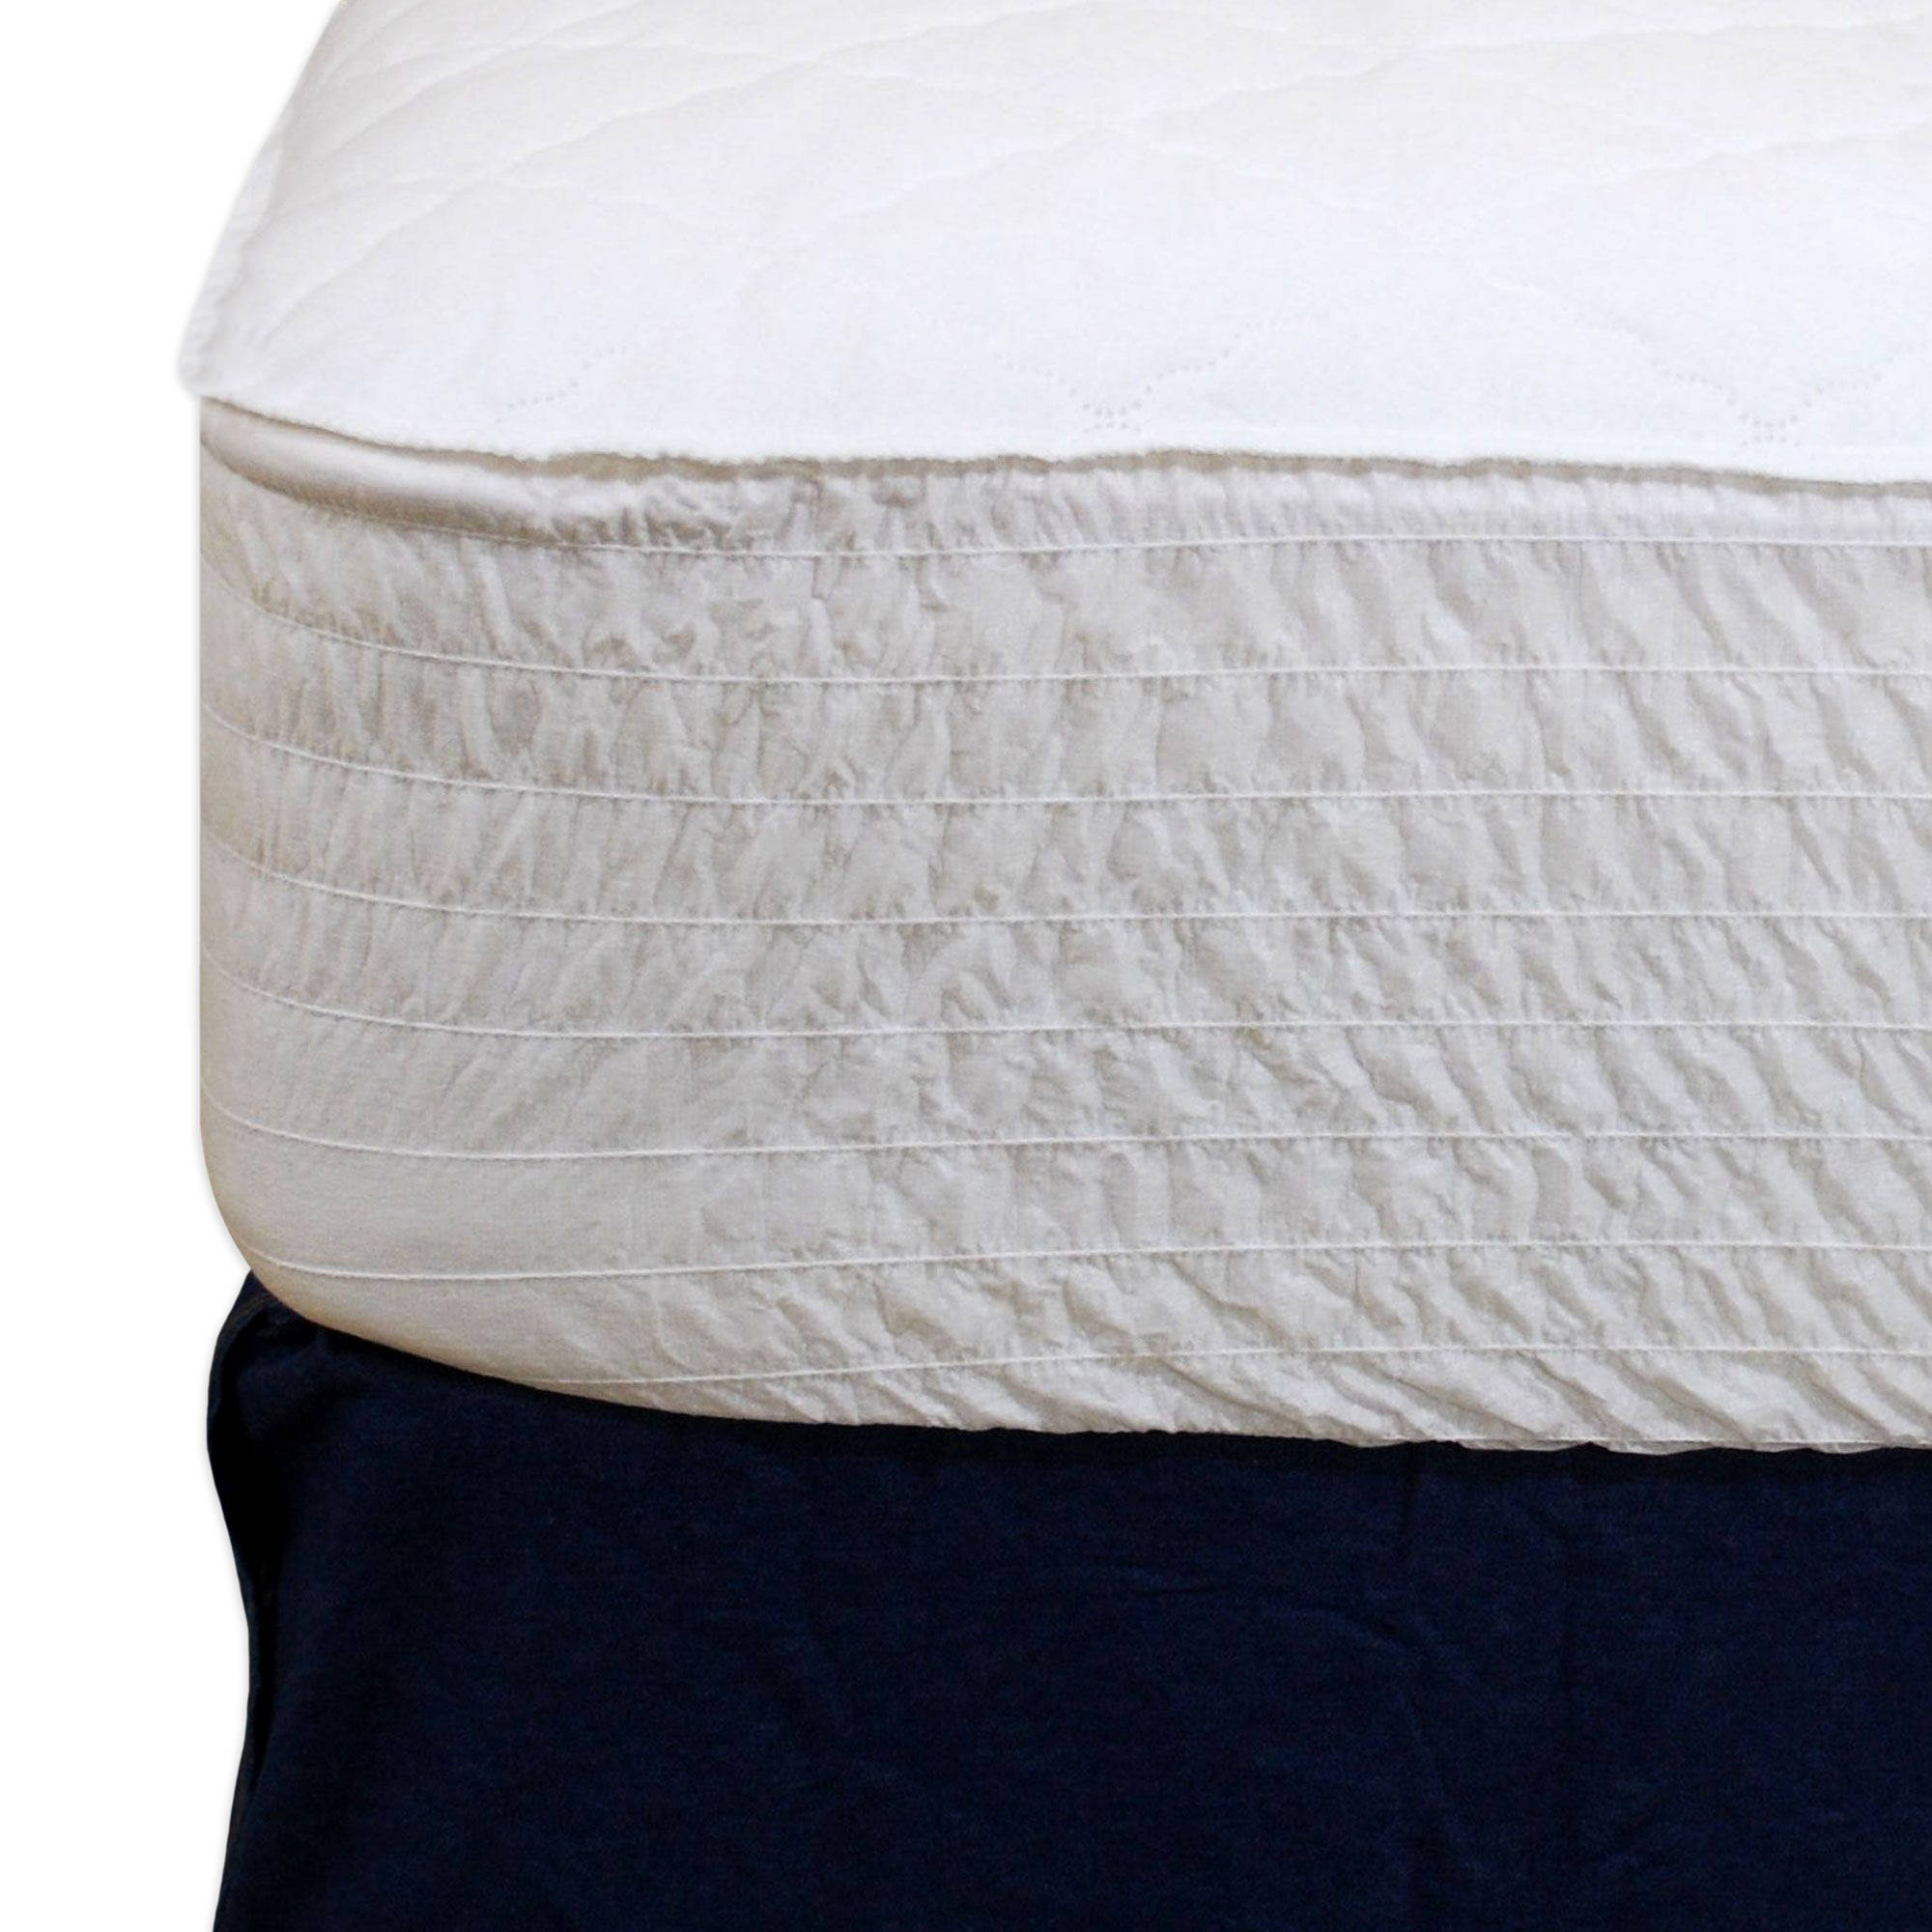 Bedding-Simmons Beautyrest Waterproof Mattress Pad